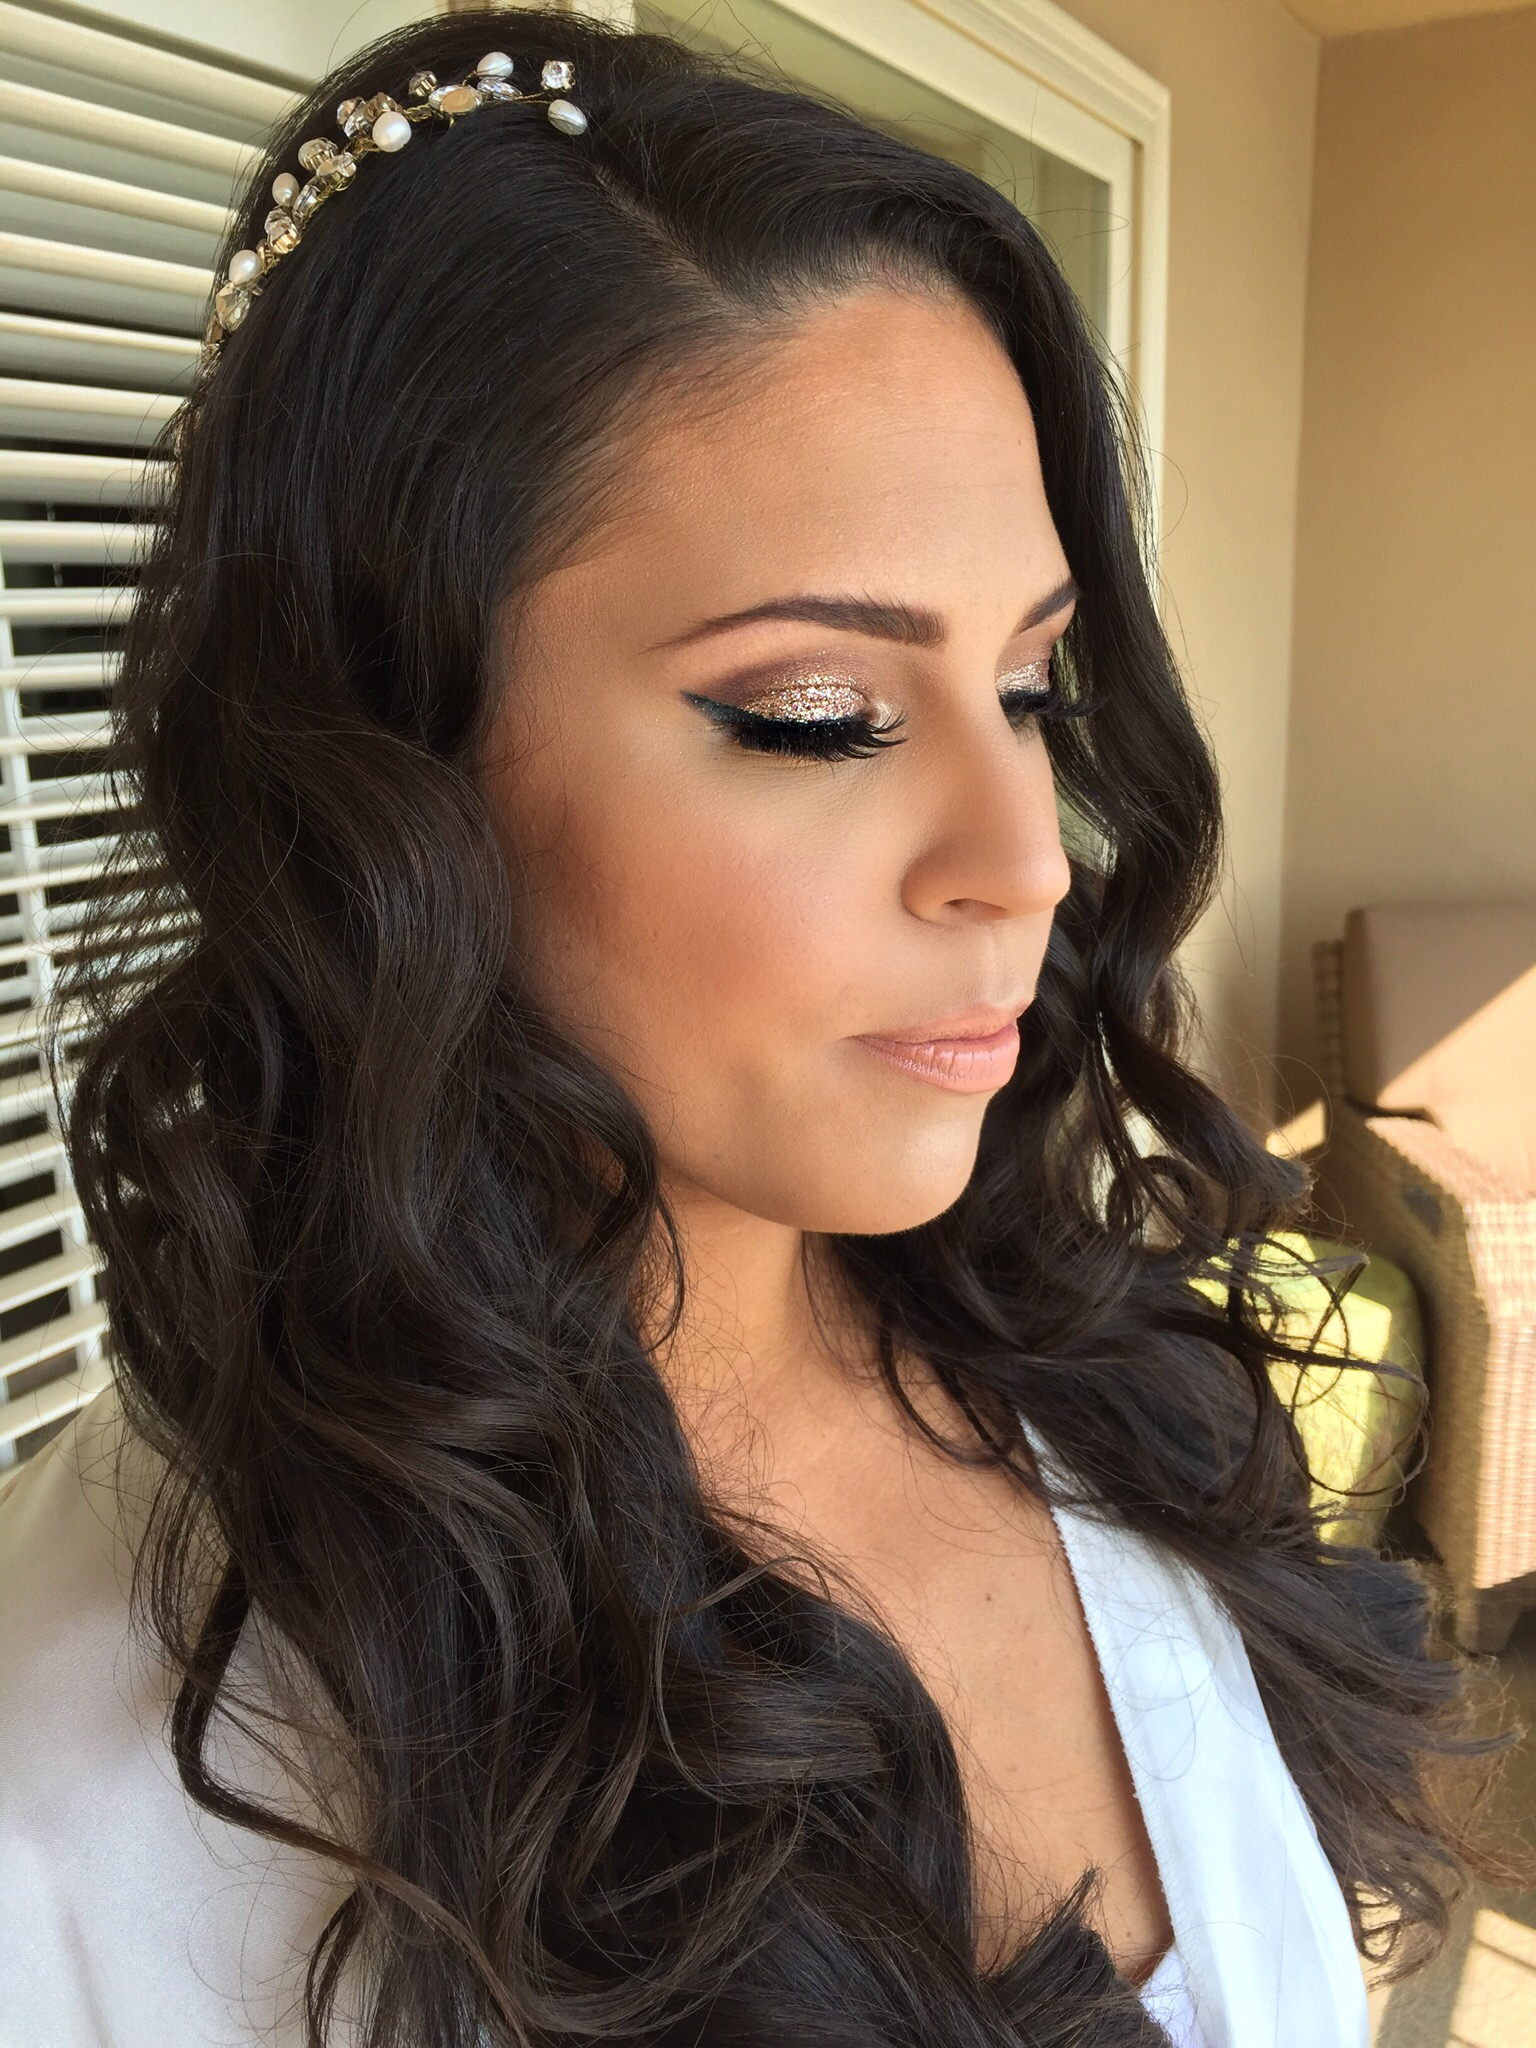 Brunette bridal makeup with sparkly smokey eye and curled hair down with accessory at Surf & Sand beach wedding in Laguna Beach. Wedding day Hair and Makeup by Vanity Belle in Orange County (Costa Mesa) and San Diego (La Jolla)